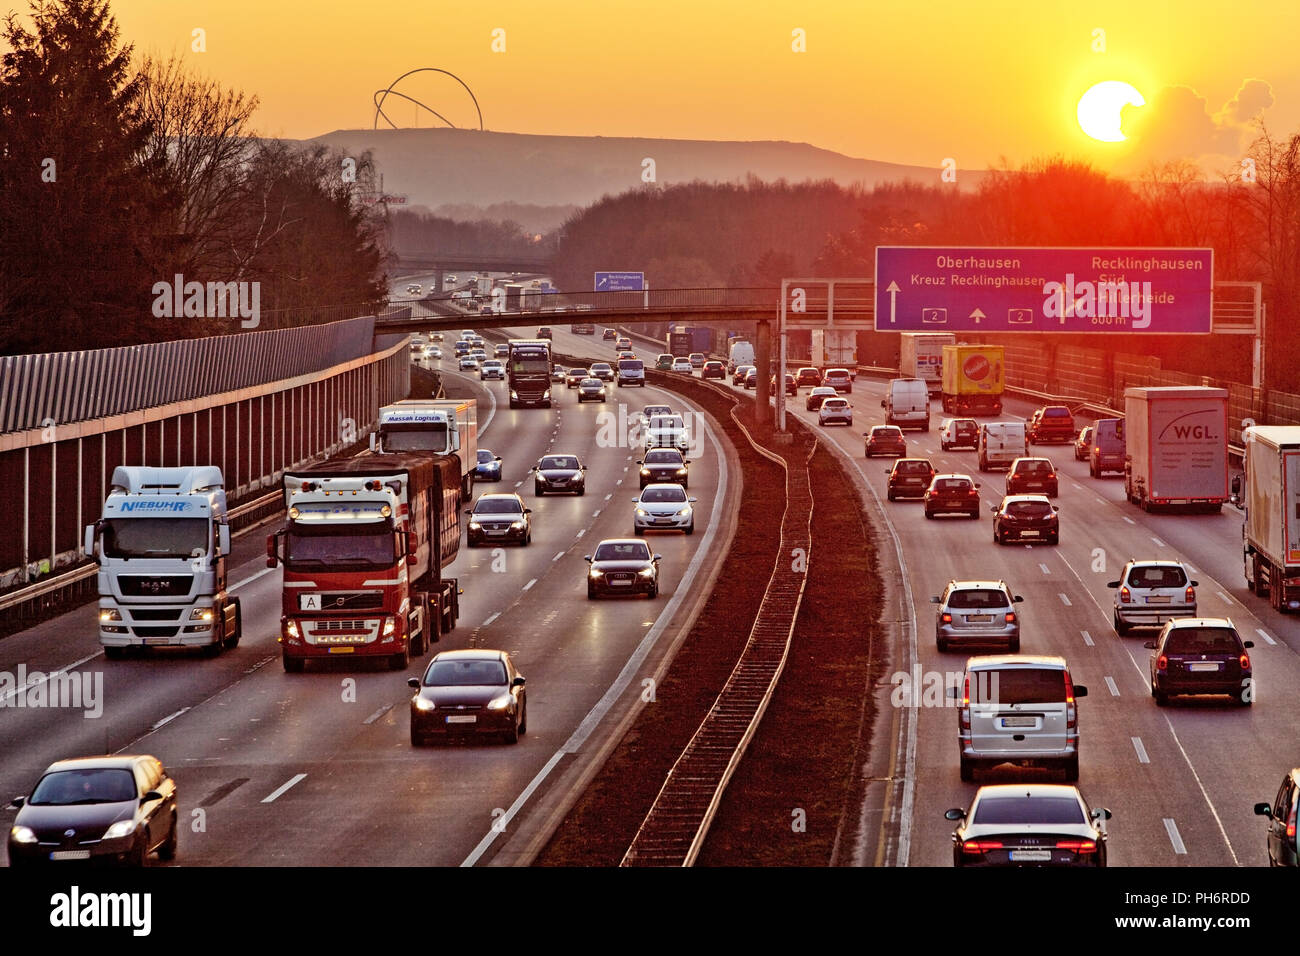 motorway A2 and Hoheward Tip, Recklinghausen - Stock Image